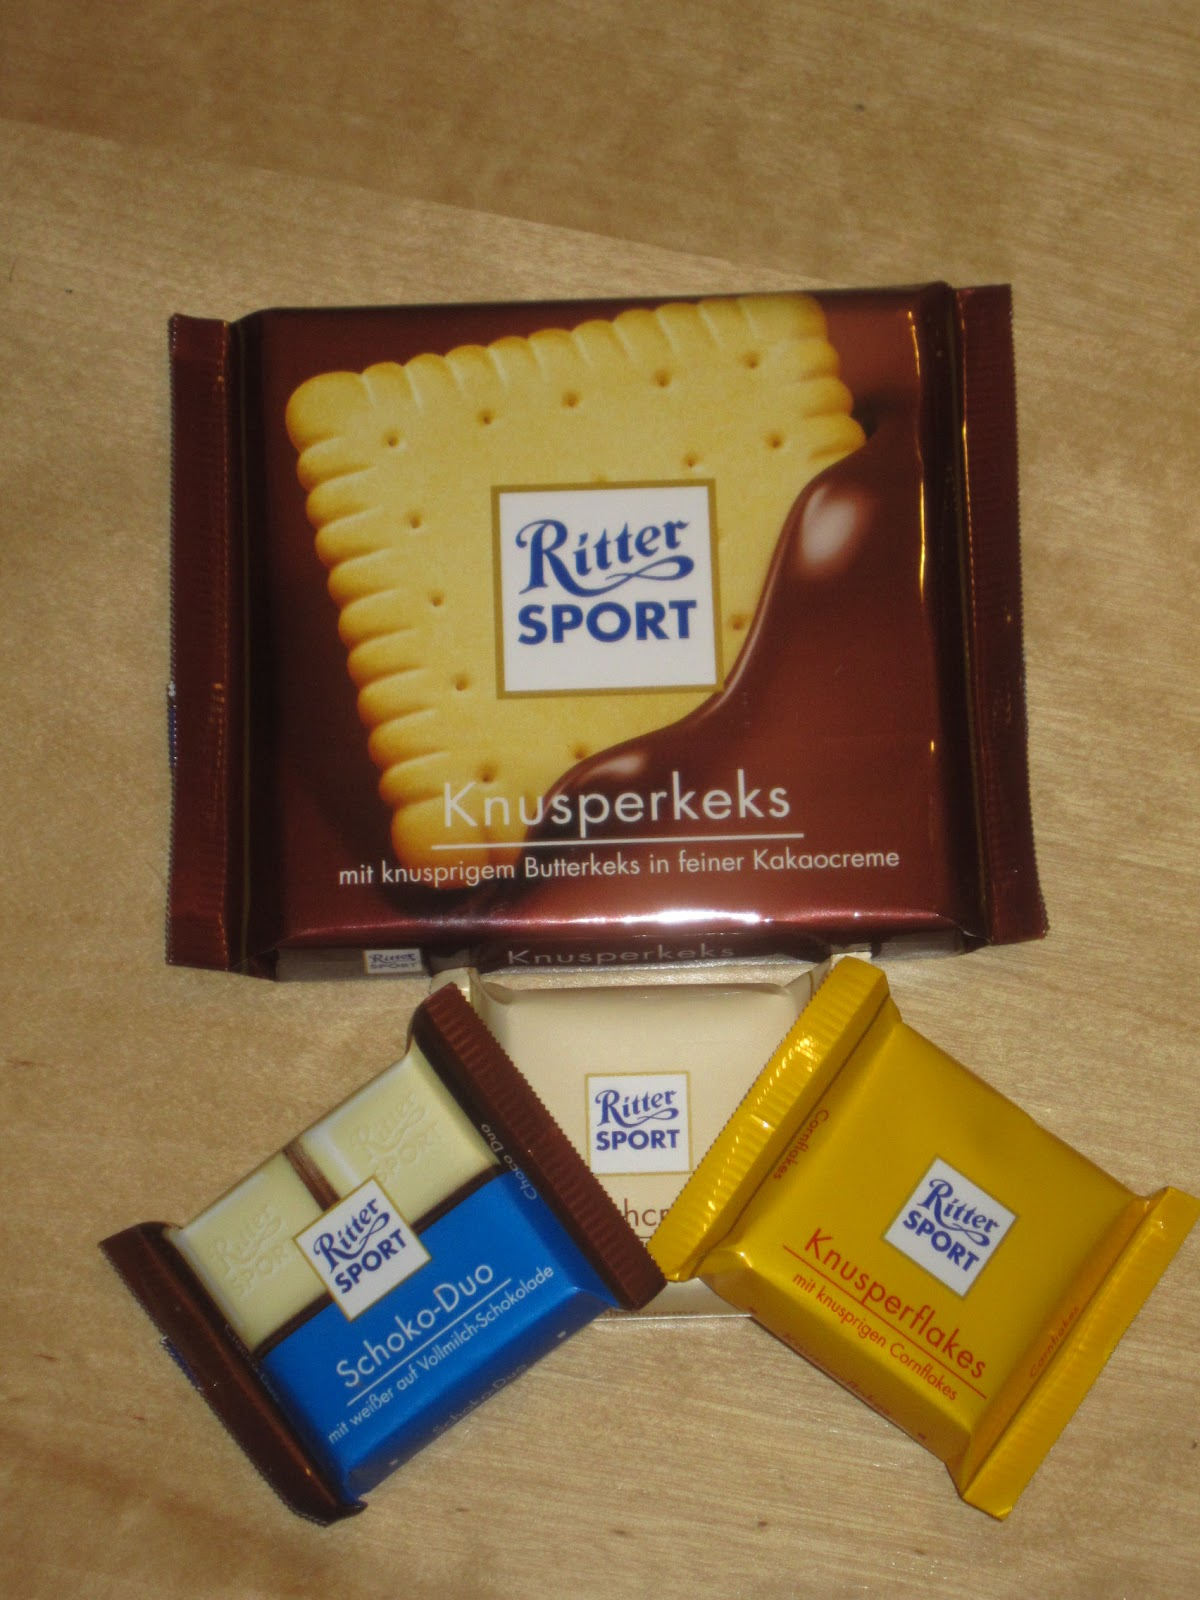 Where Is Darren Now?: Ritter Sport Chocolate Factory And Museum